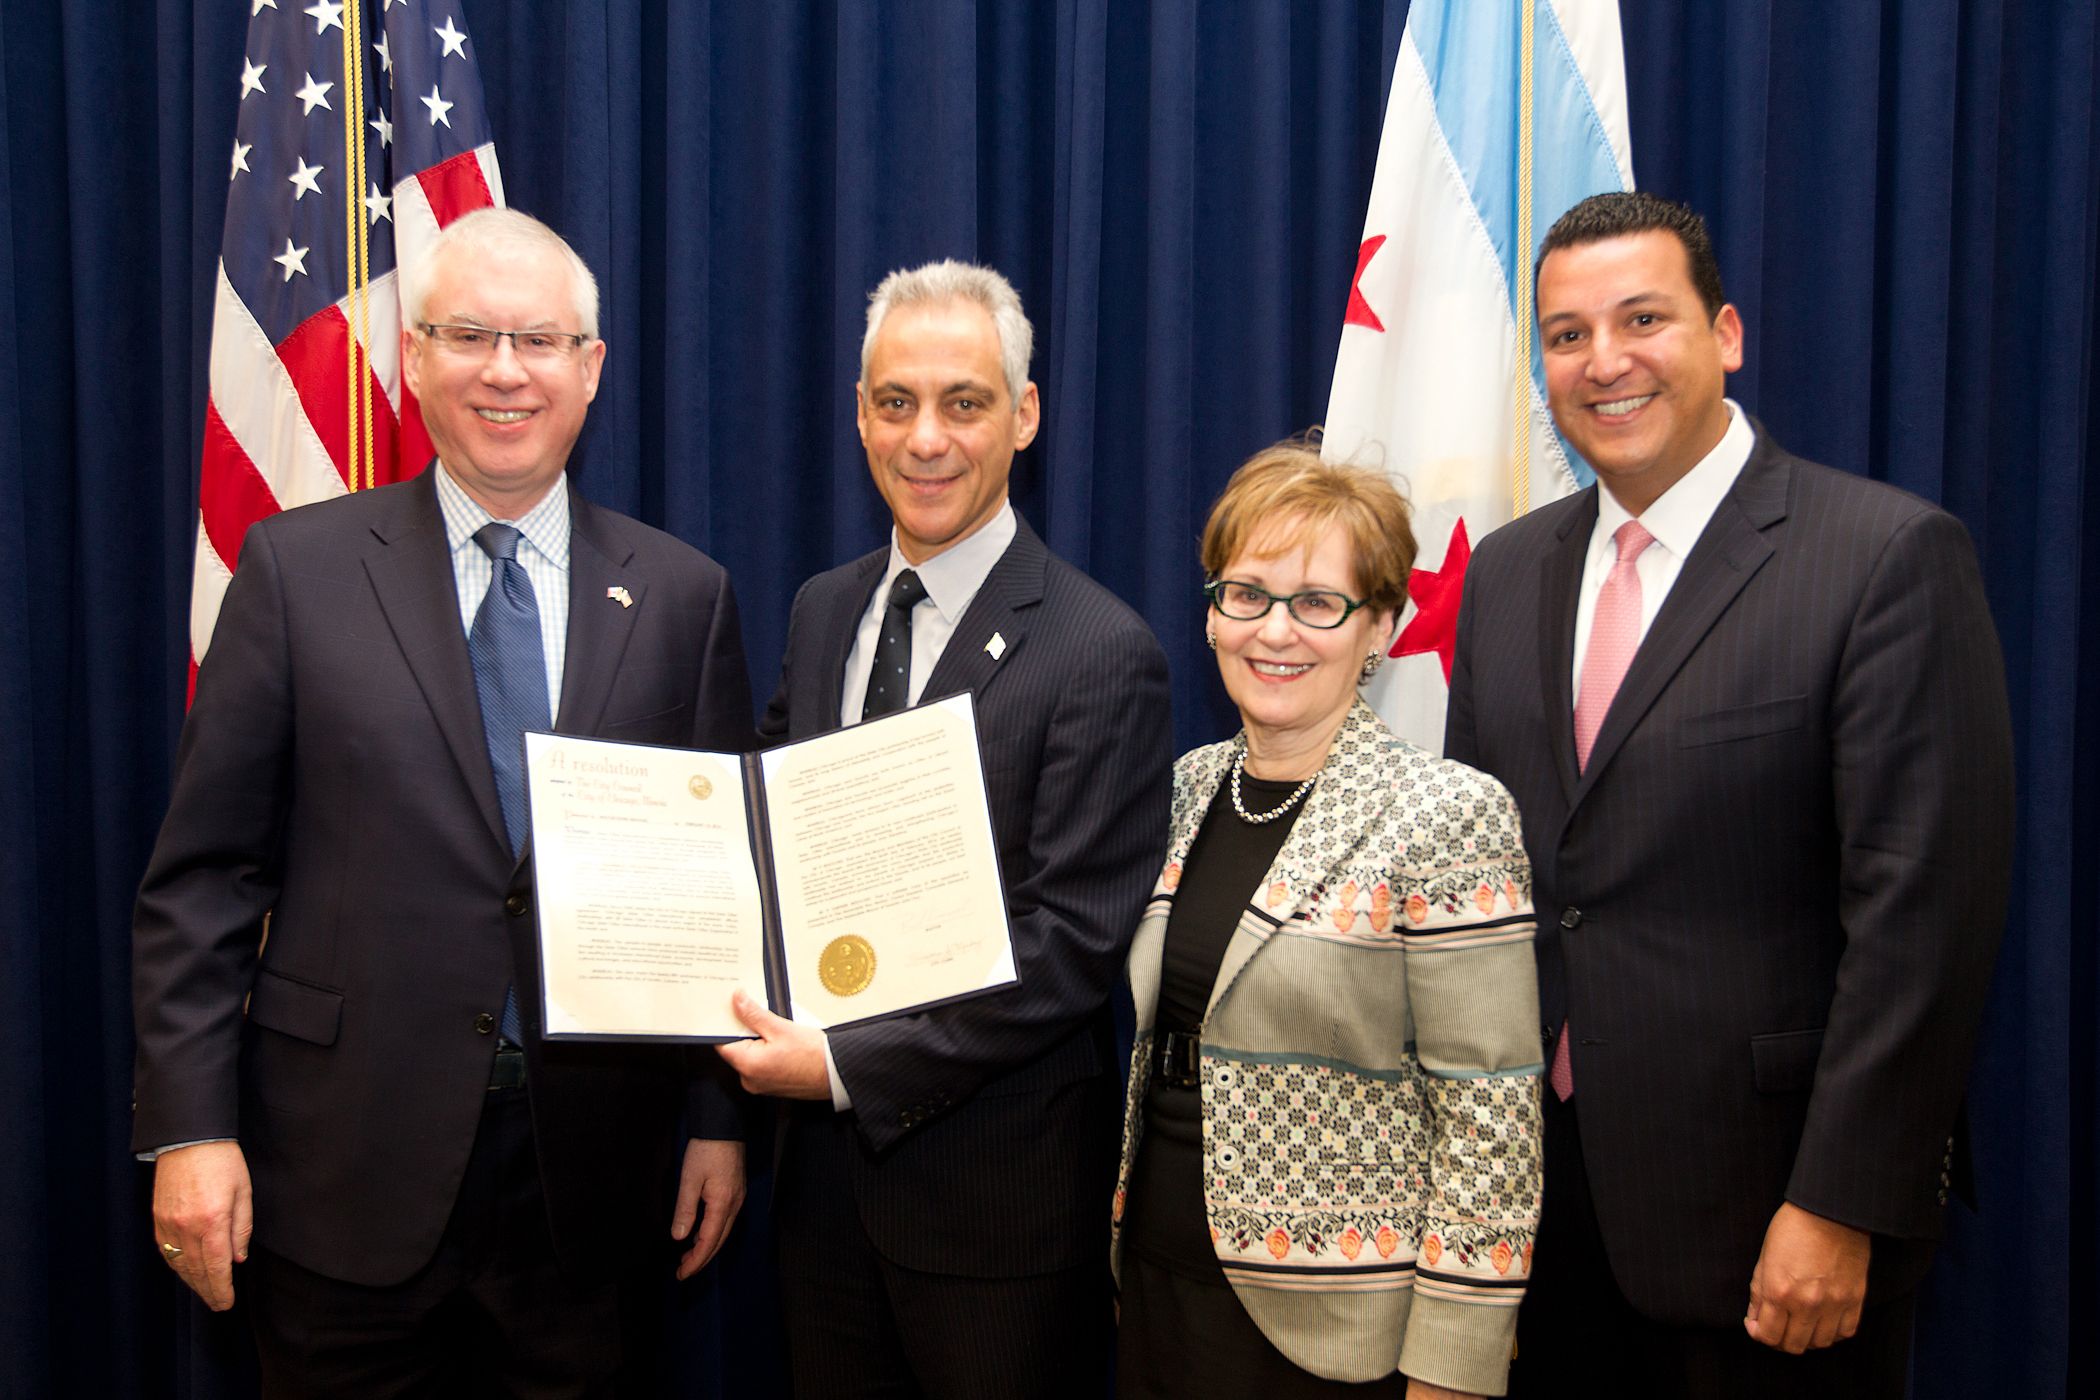 Toronto Sister City Anniversary Resolution: The Honorable Roy Norton, Consul General of Canada; Chicago Mayor Rahm Emanuel; Linda Loving, Chair of the Toronto Committee of Chicago Sister Cities International; and Leroy Allala, Executive Director of Chicago Sister Cities International. Photo by Brooke Collins, City of Chicago.